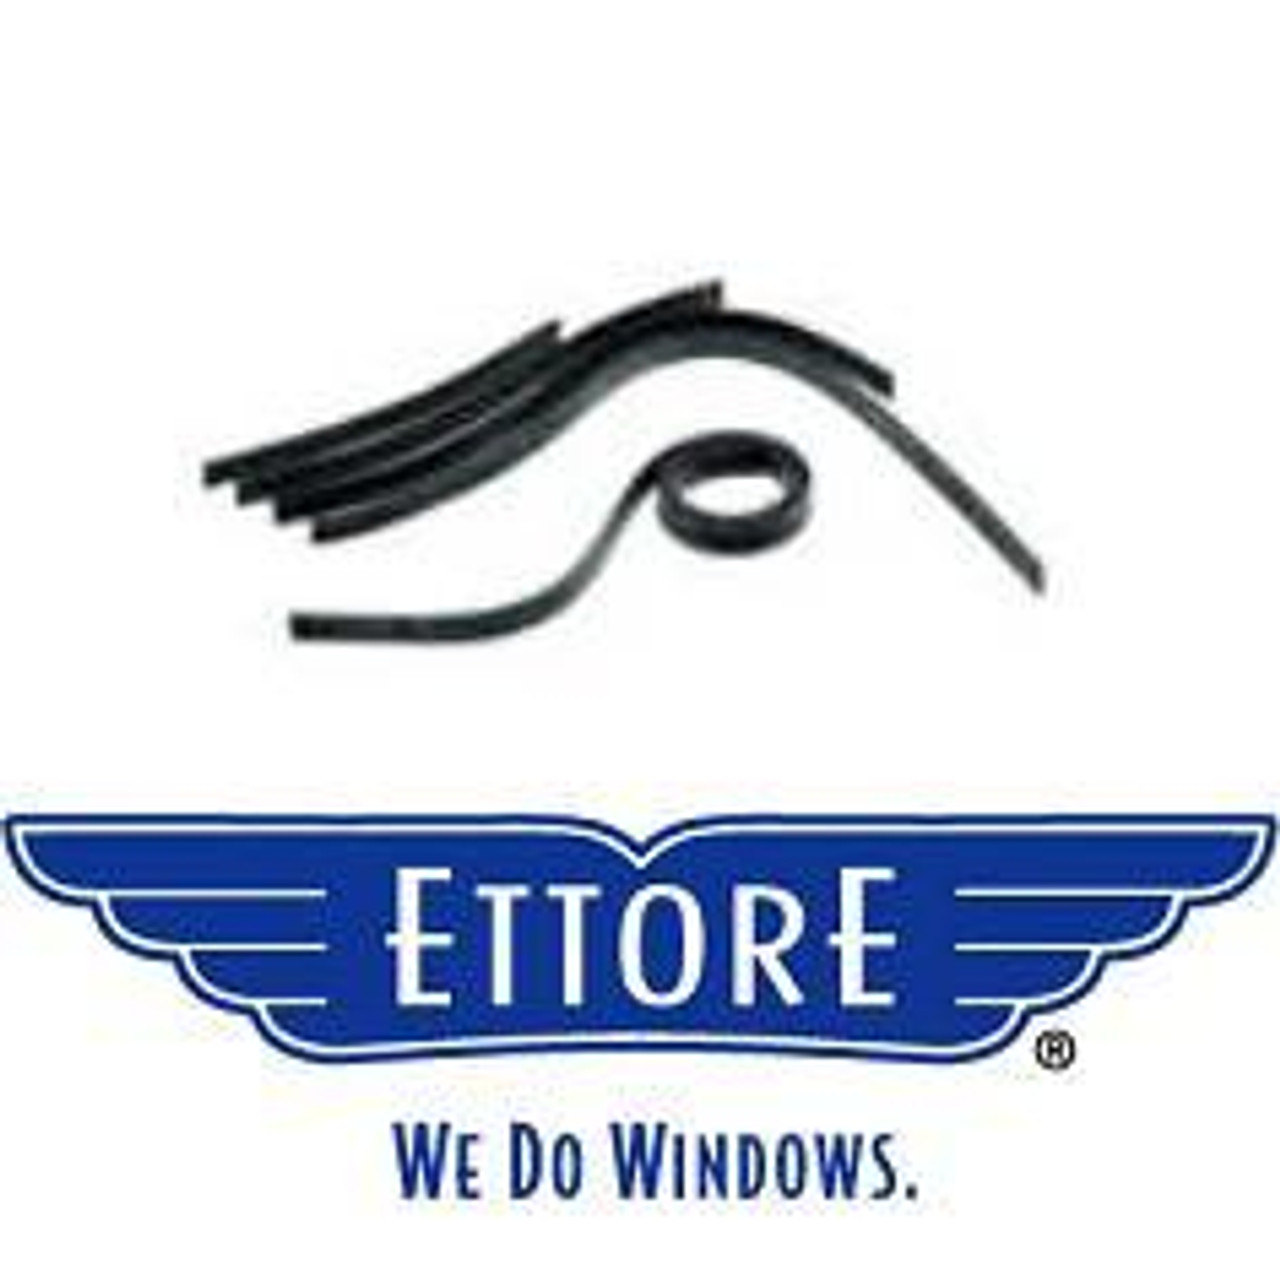 Ettore Master Rubber, Ettore Rubber, Soft Rubber, Window Cleaning Rubber